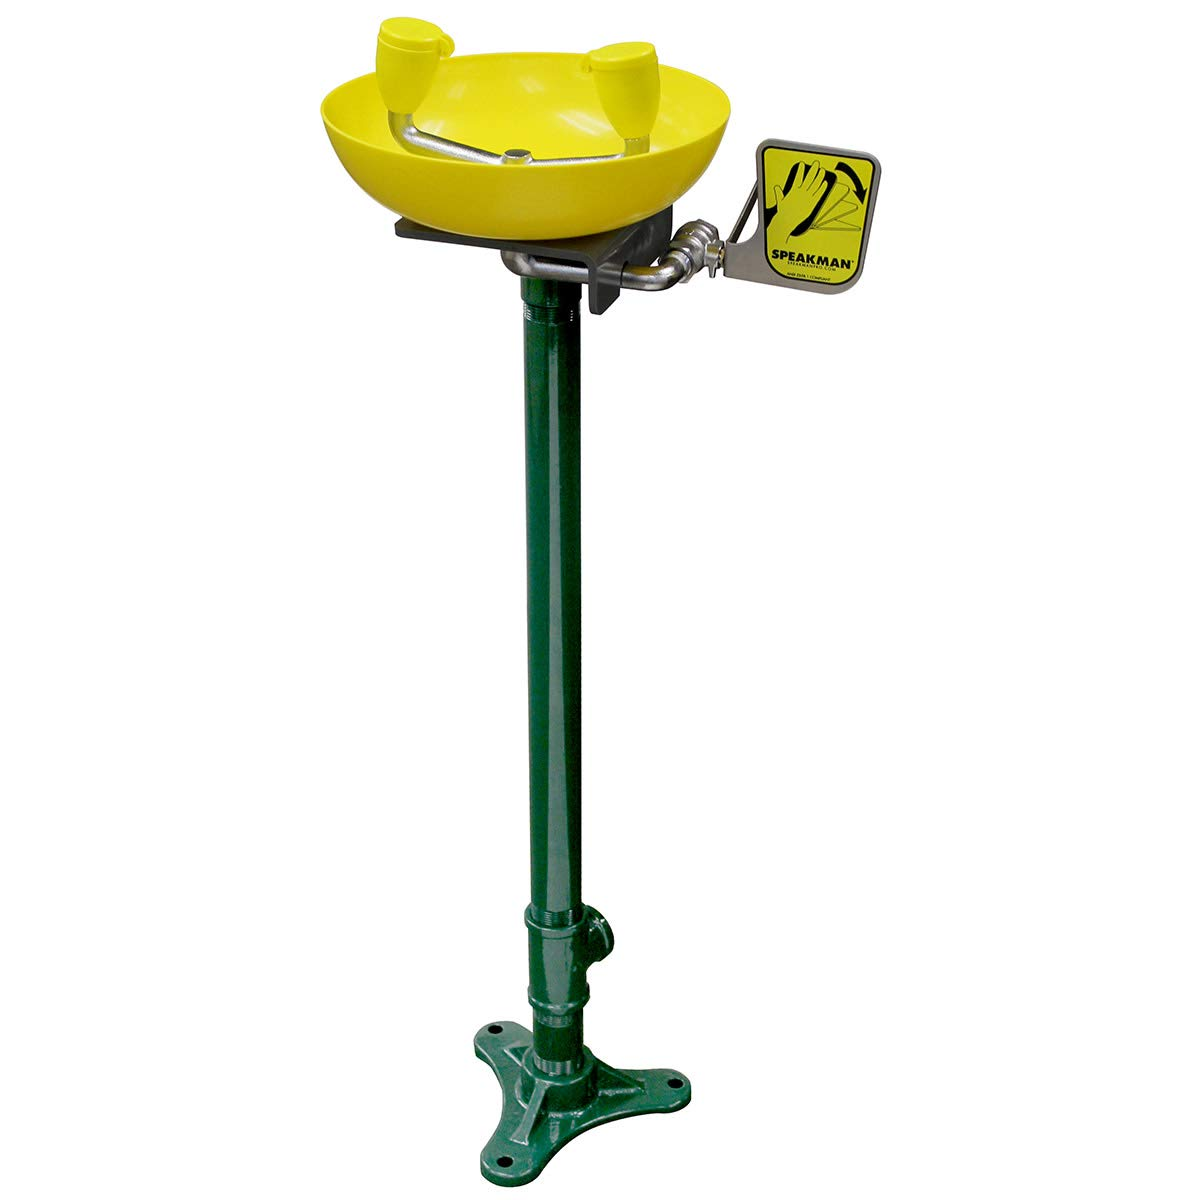 Speakman SE-496 Traditional Series Pedestal-Mounted Emergency Eye and Face Wash, Yellow